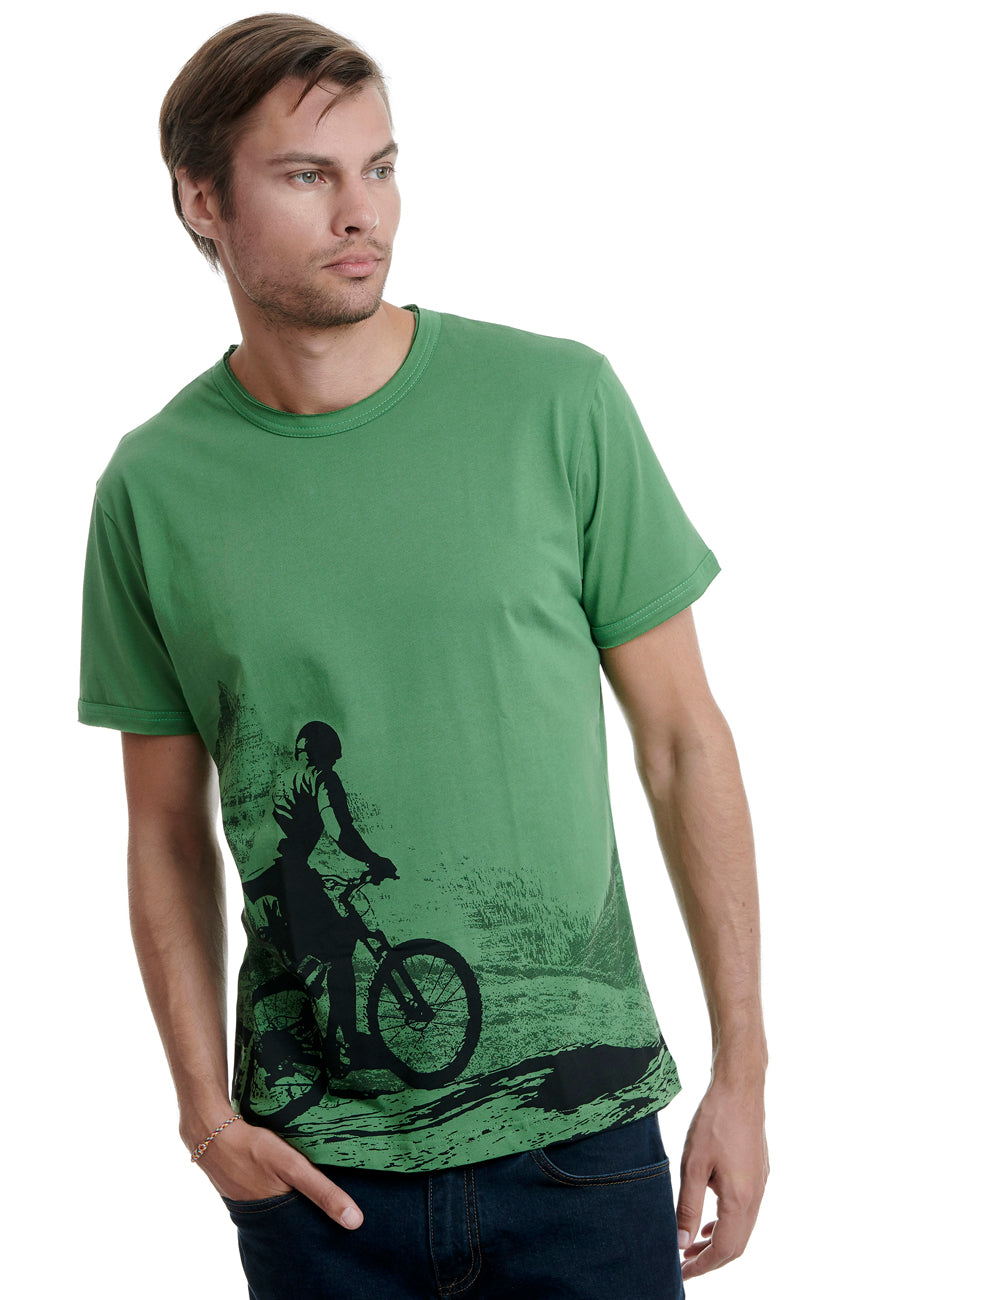 Mountain bike Replica tshirt Greece green